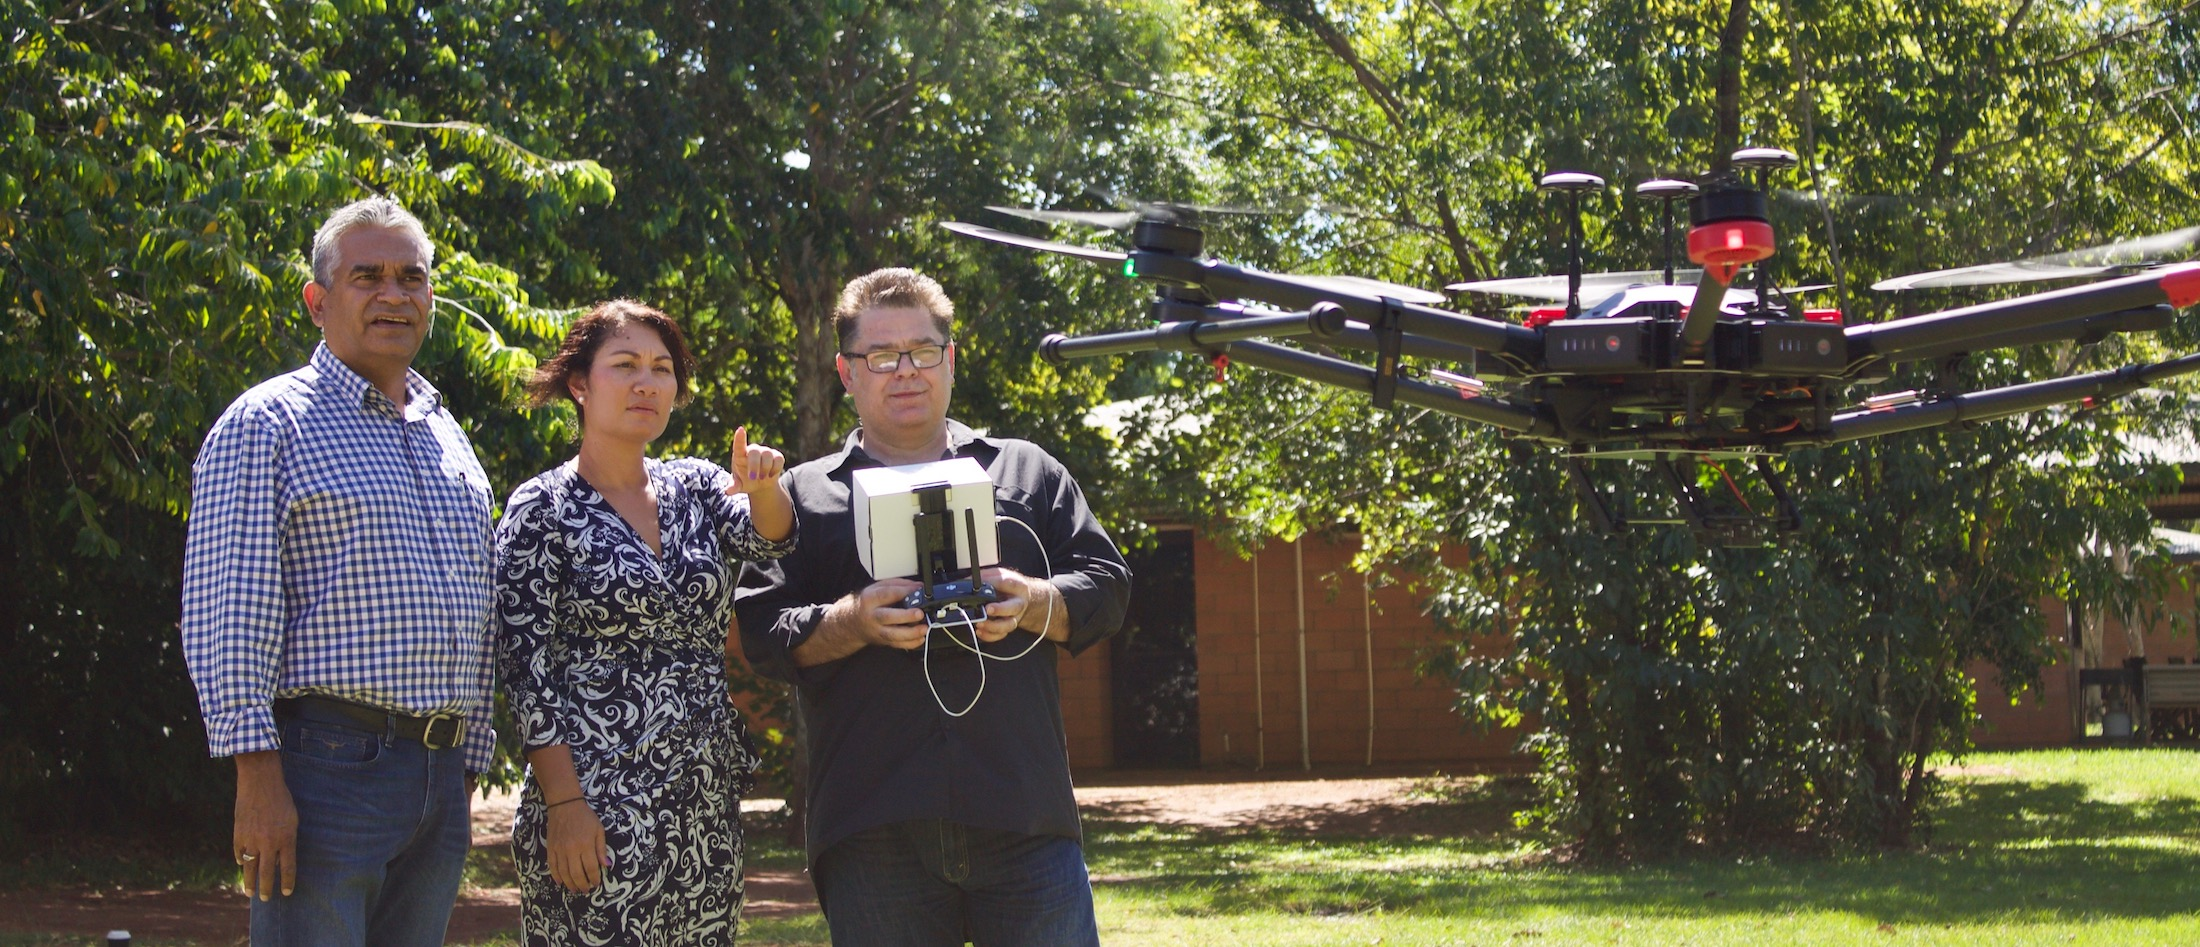 IMG_Acting CEO Ms Anstess watching Mr Coyne take the new drones for the first of many flights at Batchelor Institute, with Dr Stephen Hagan Senior Director Alliance Management copy